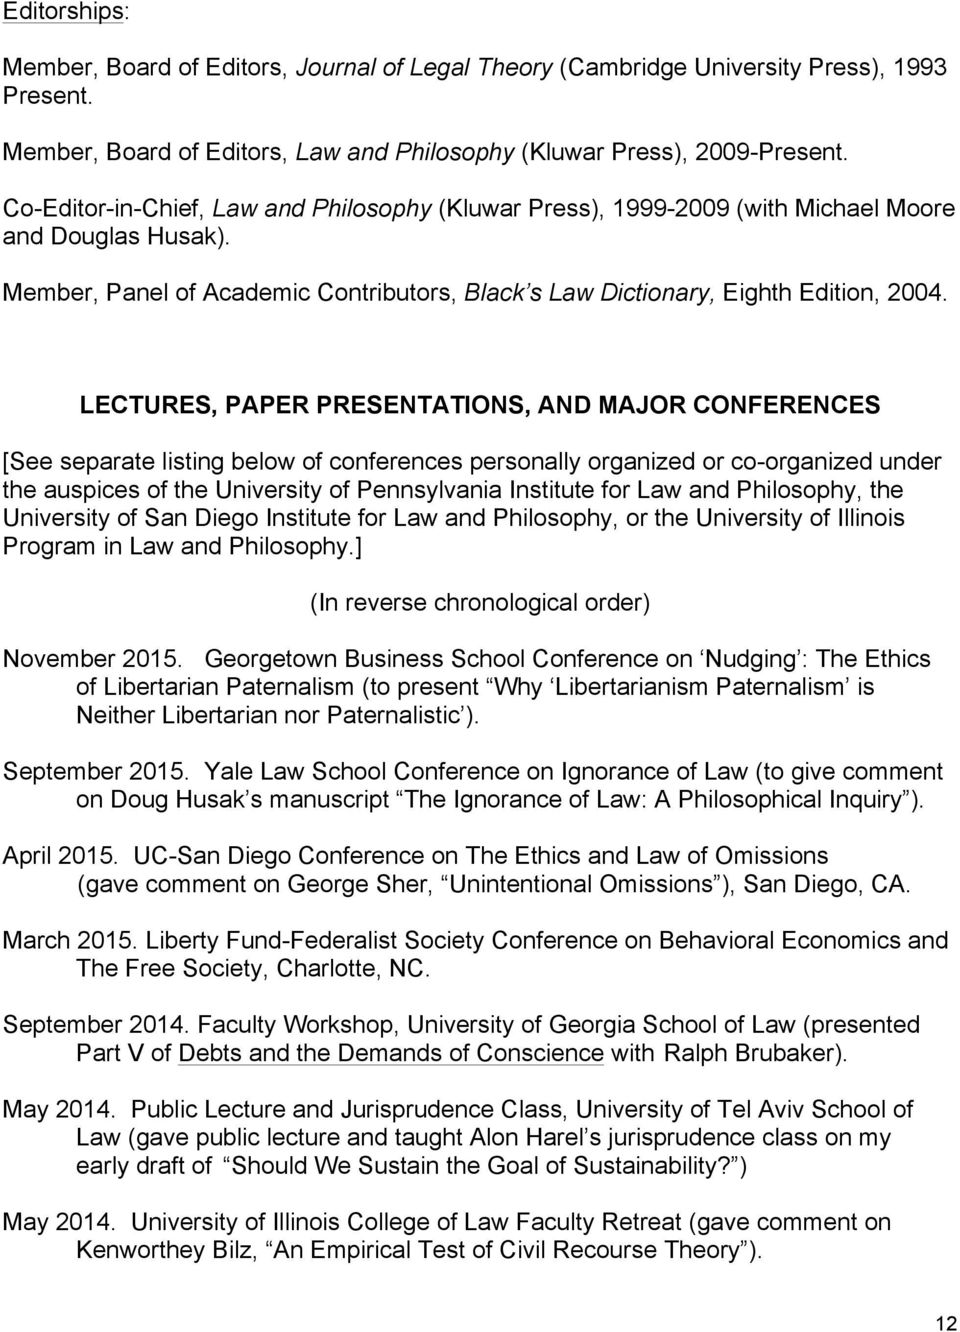 LECTURES, PAPER PRESENTATIONS, AND MAJOR CONFERENCES [See separate listing below of conferences personally organized or co-organized under the auspices of the University of Pennsylvania Institute for